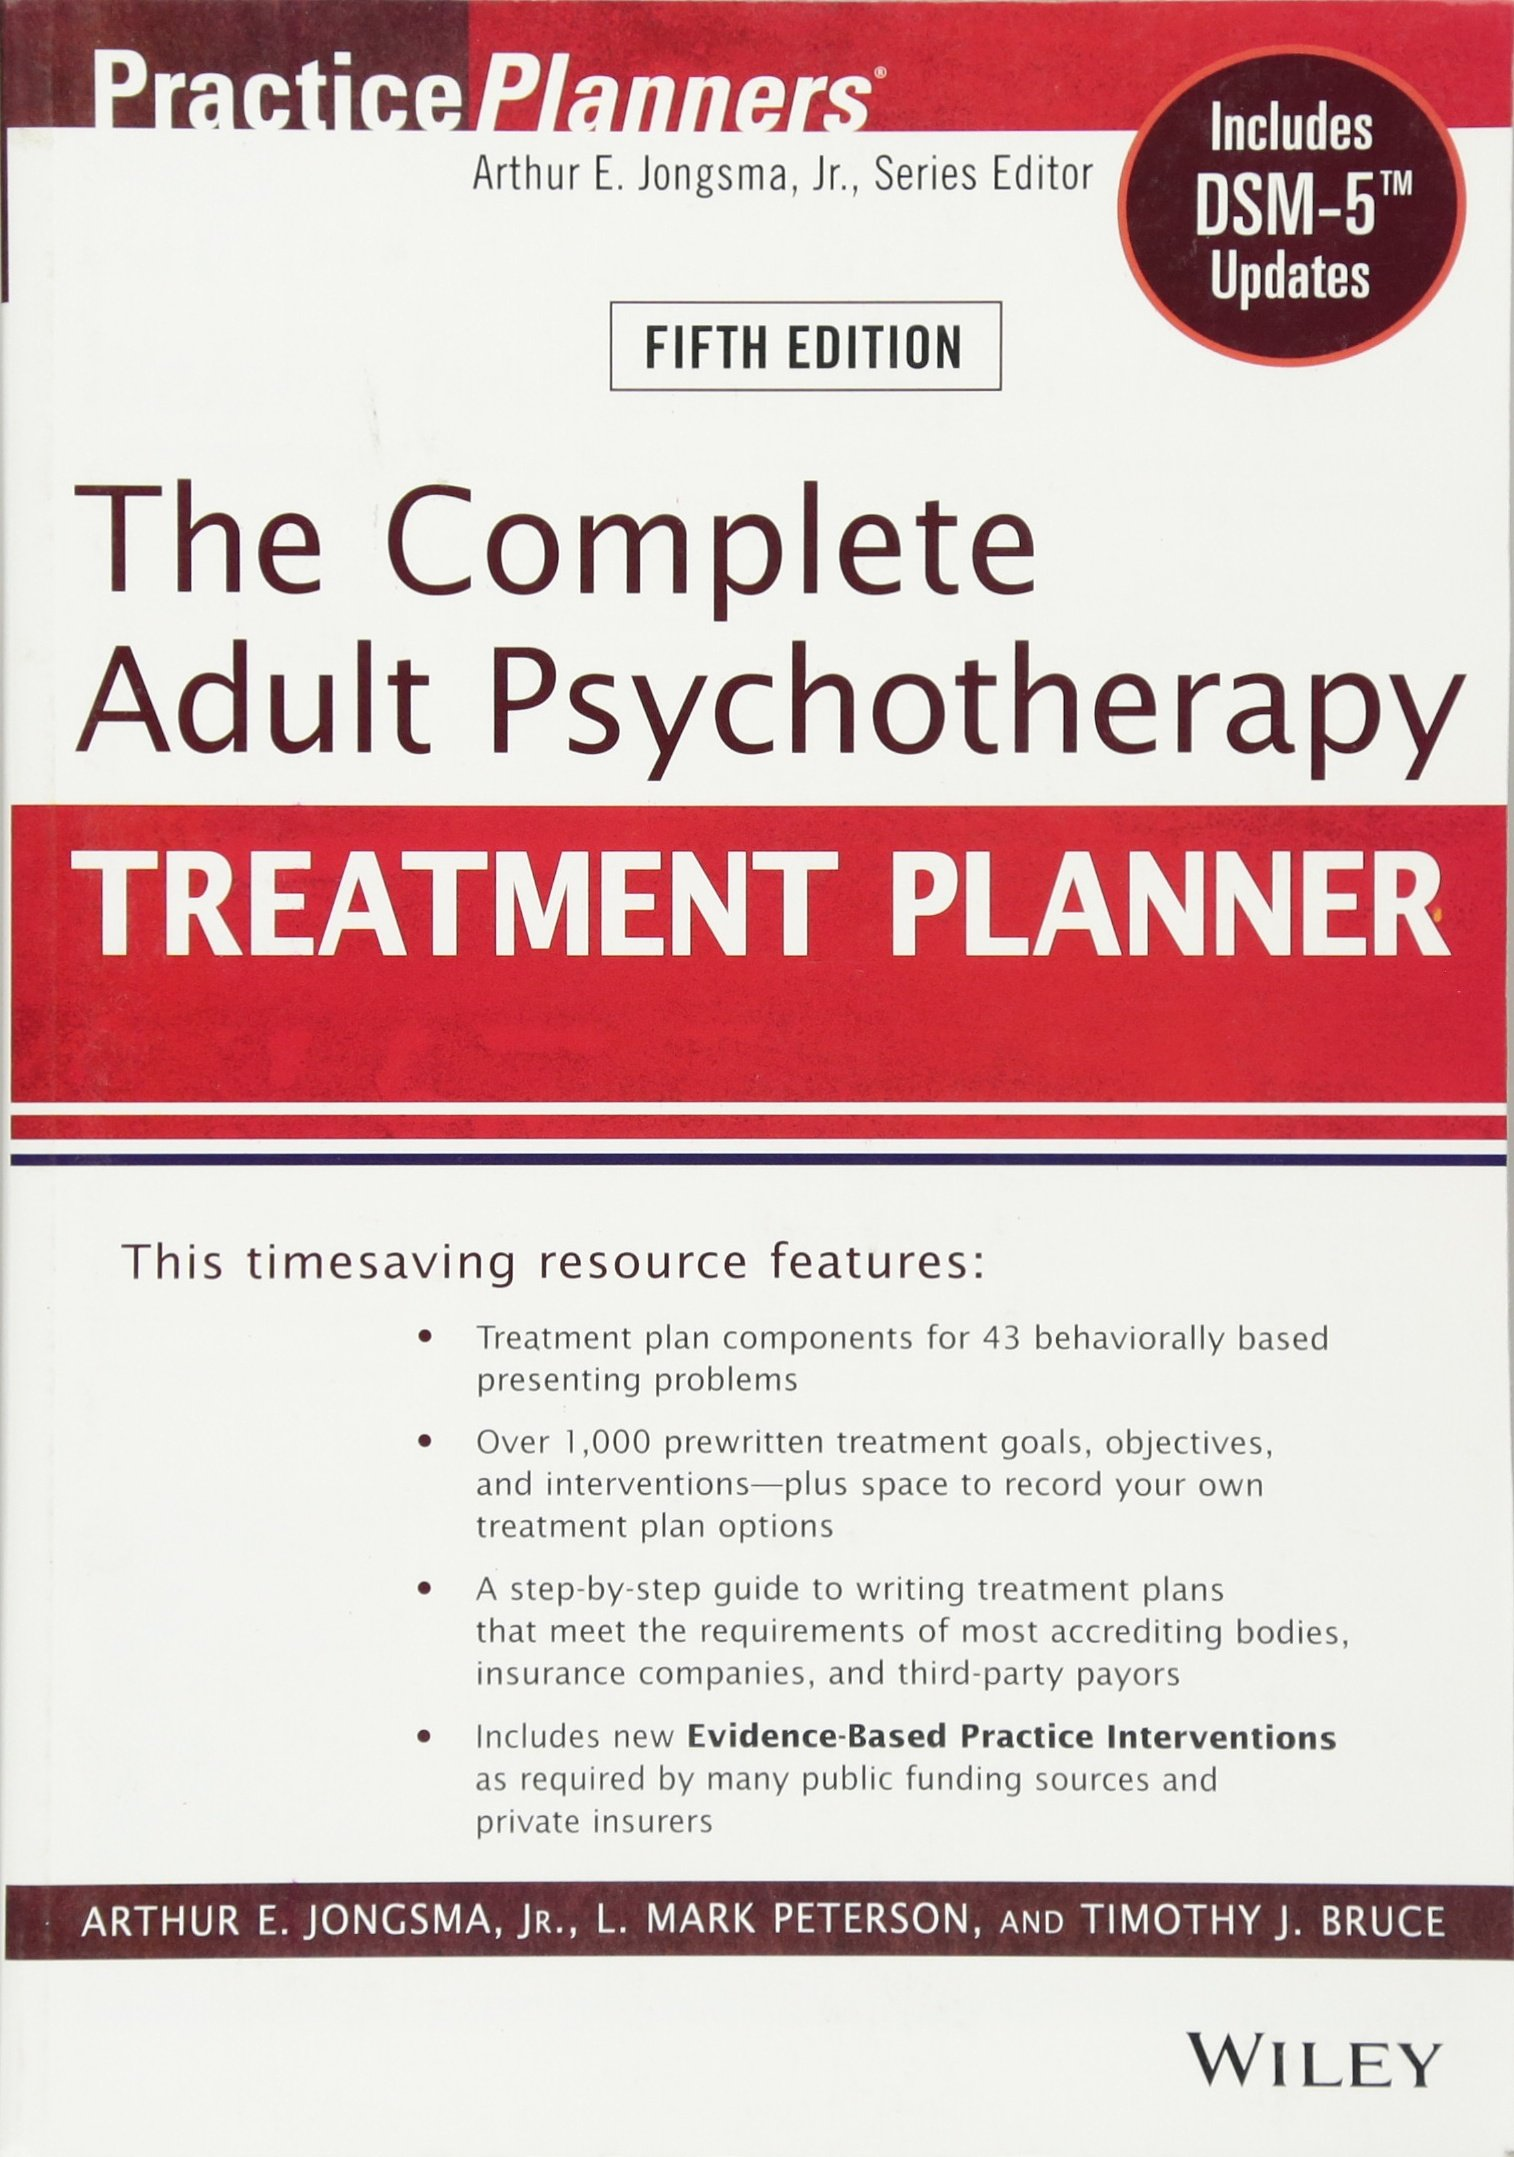 The Plete Adult Psychotherapy Treatment Planner Includes